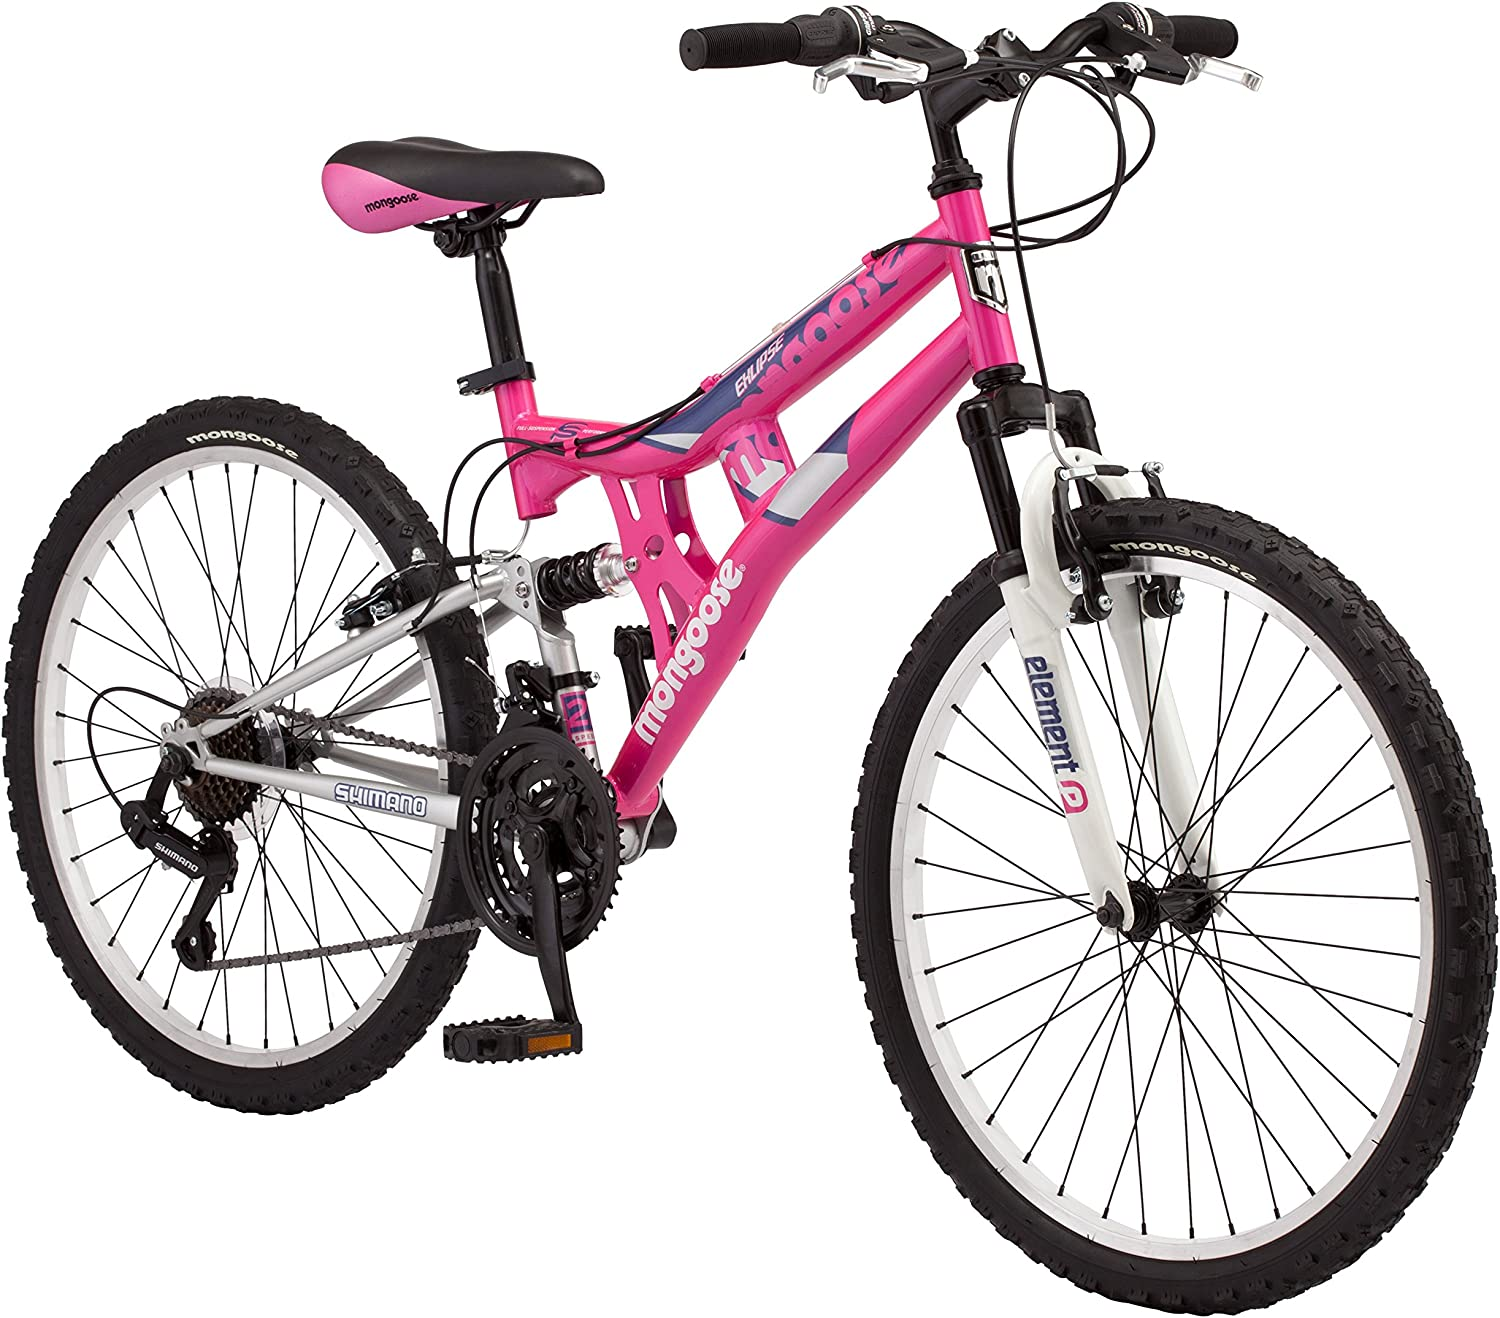 Top 9 Best Kid Mountain Bike (2020 Reviews & Buying Guide) 2